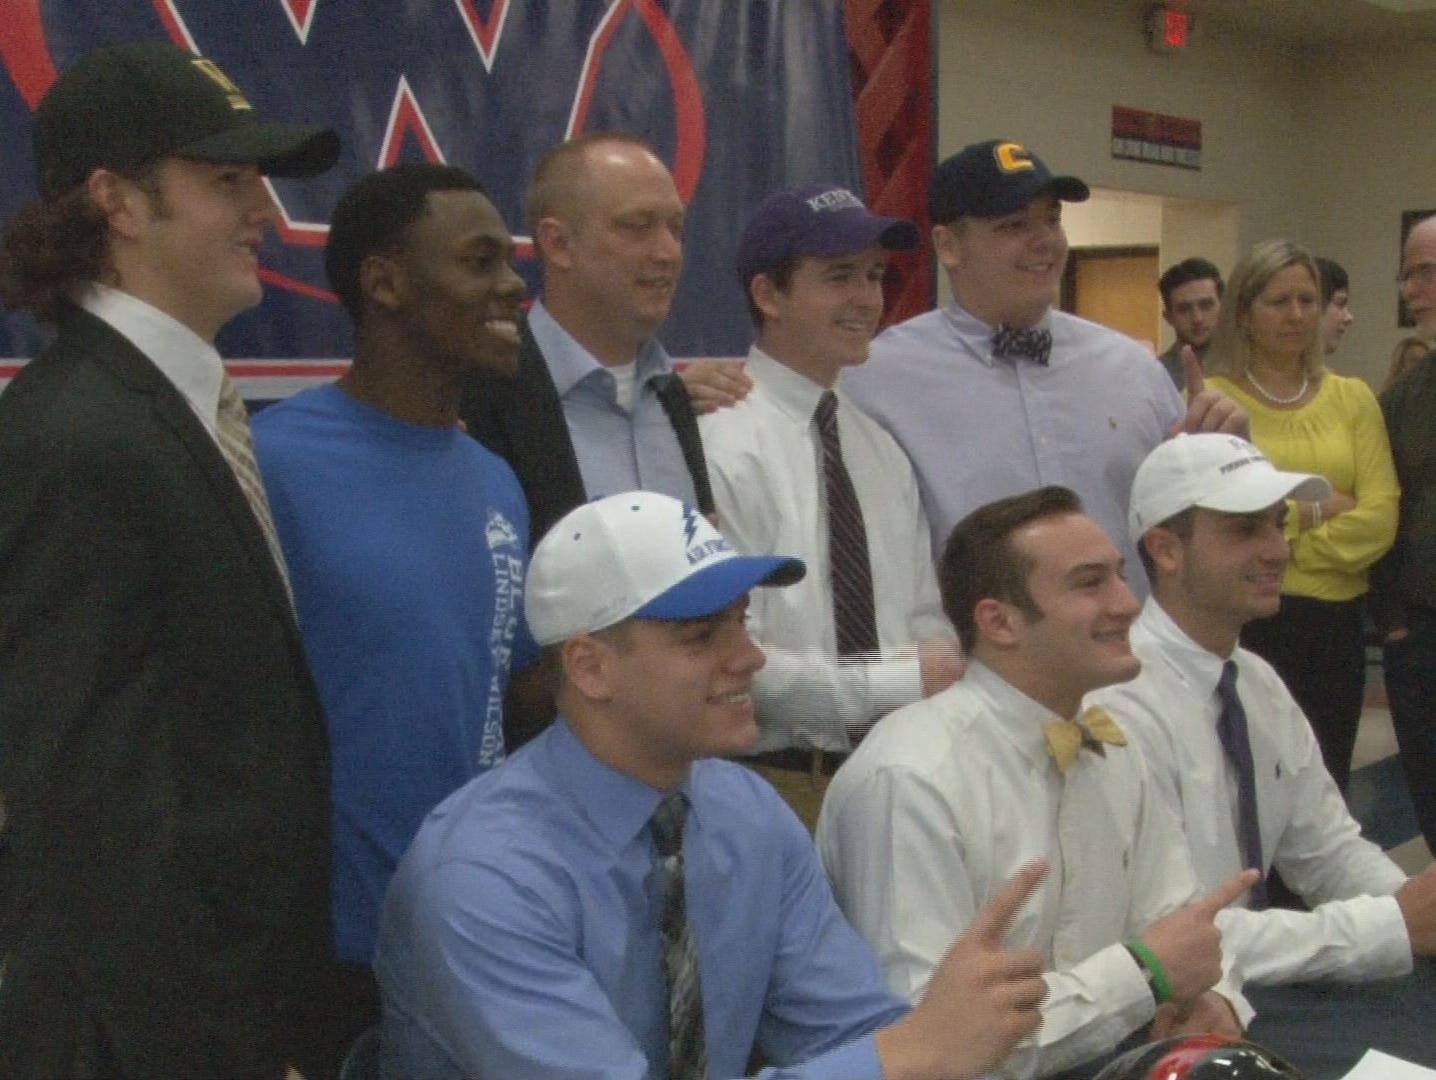 2015 West Football seniors on National Signing Day